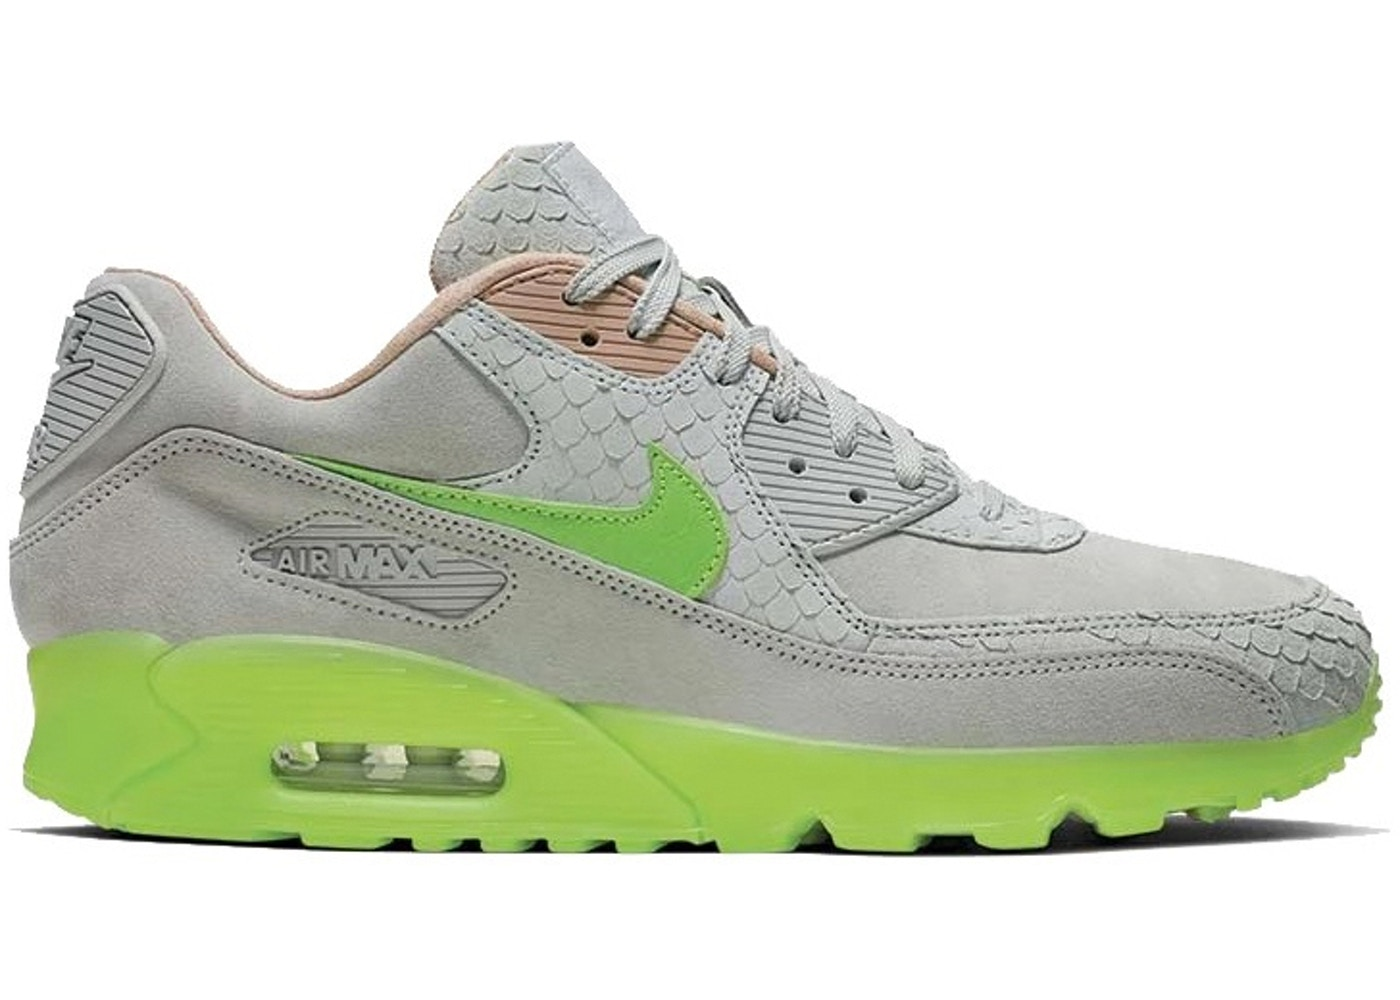 classic style new appearance great fit Buy Nike Air Max 90 Shoes & Deadstock Sneakers